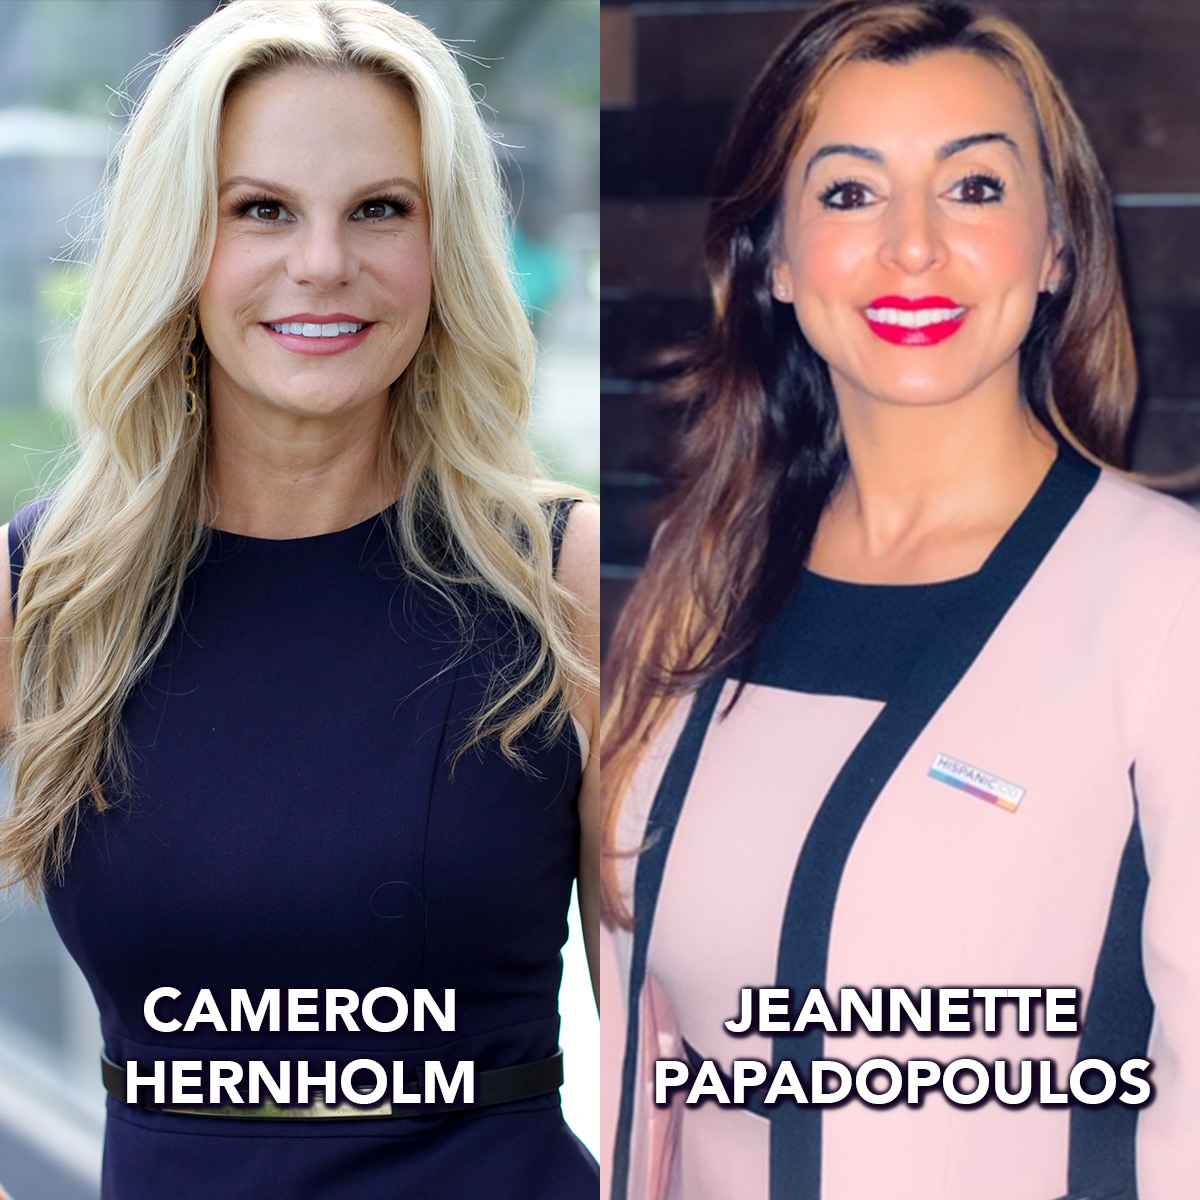 CISDR Welcomes Cameron Hernholm and Jeannette Papadopoulos